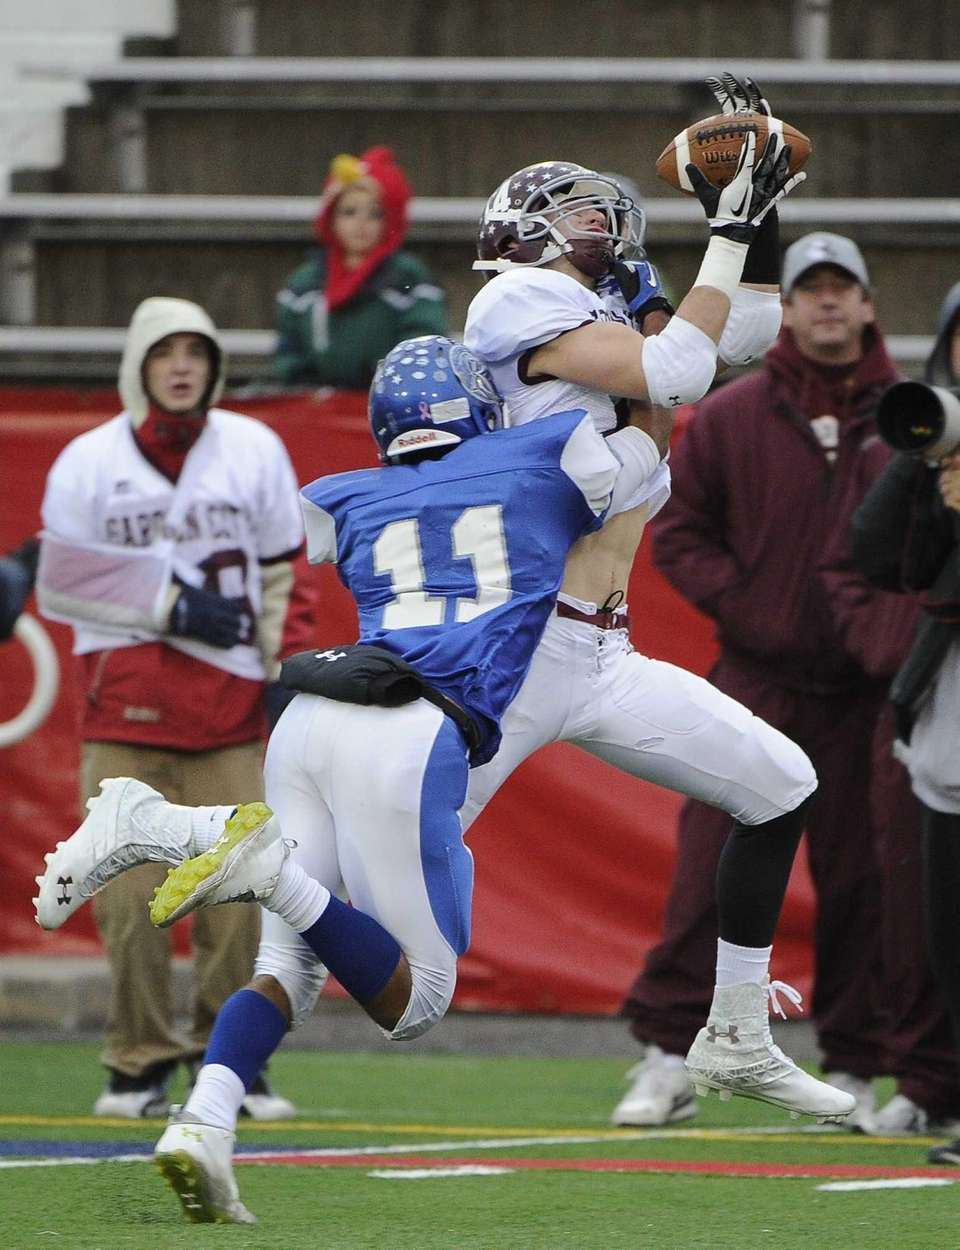 Garden City's Ed Blatz makes the catch defended